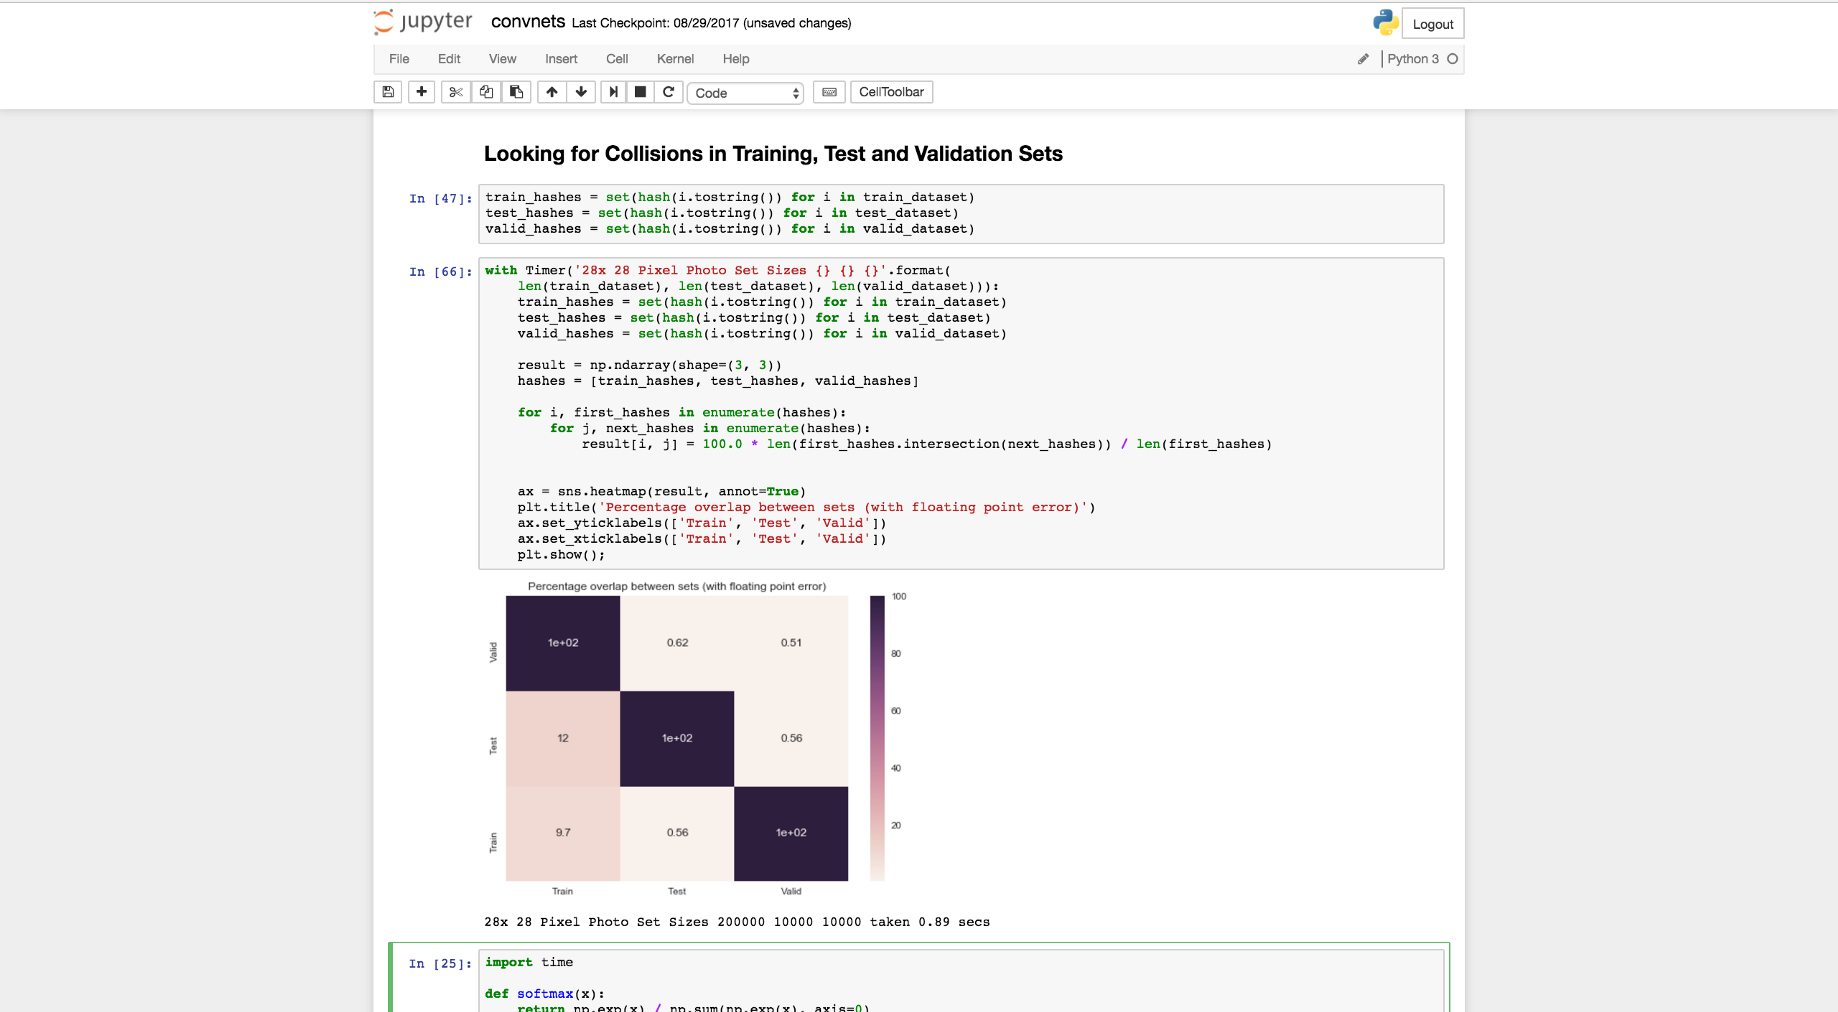 Jupyter Notebooks are Breathtakingly Featureless — Use Jupyter Lab